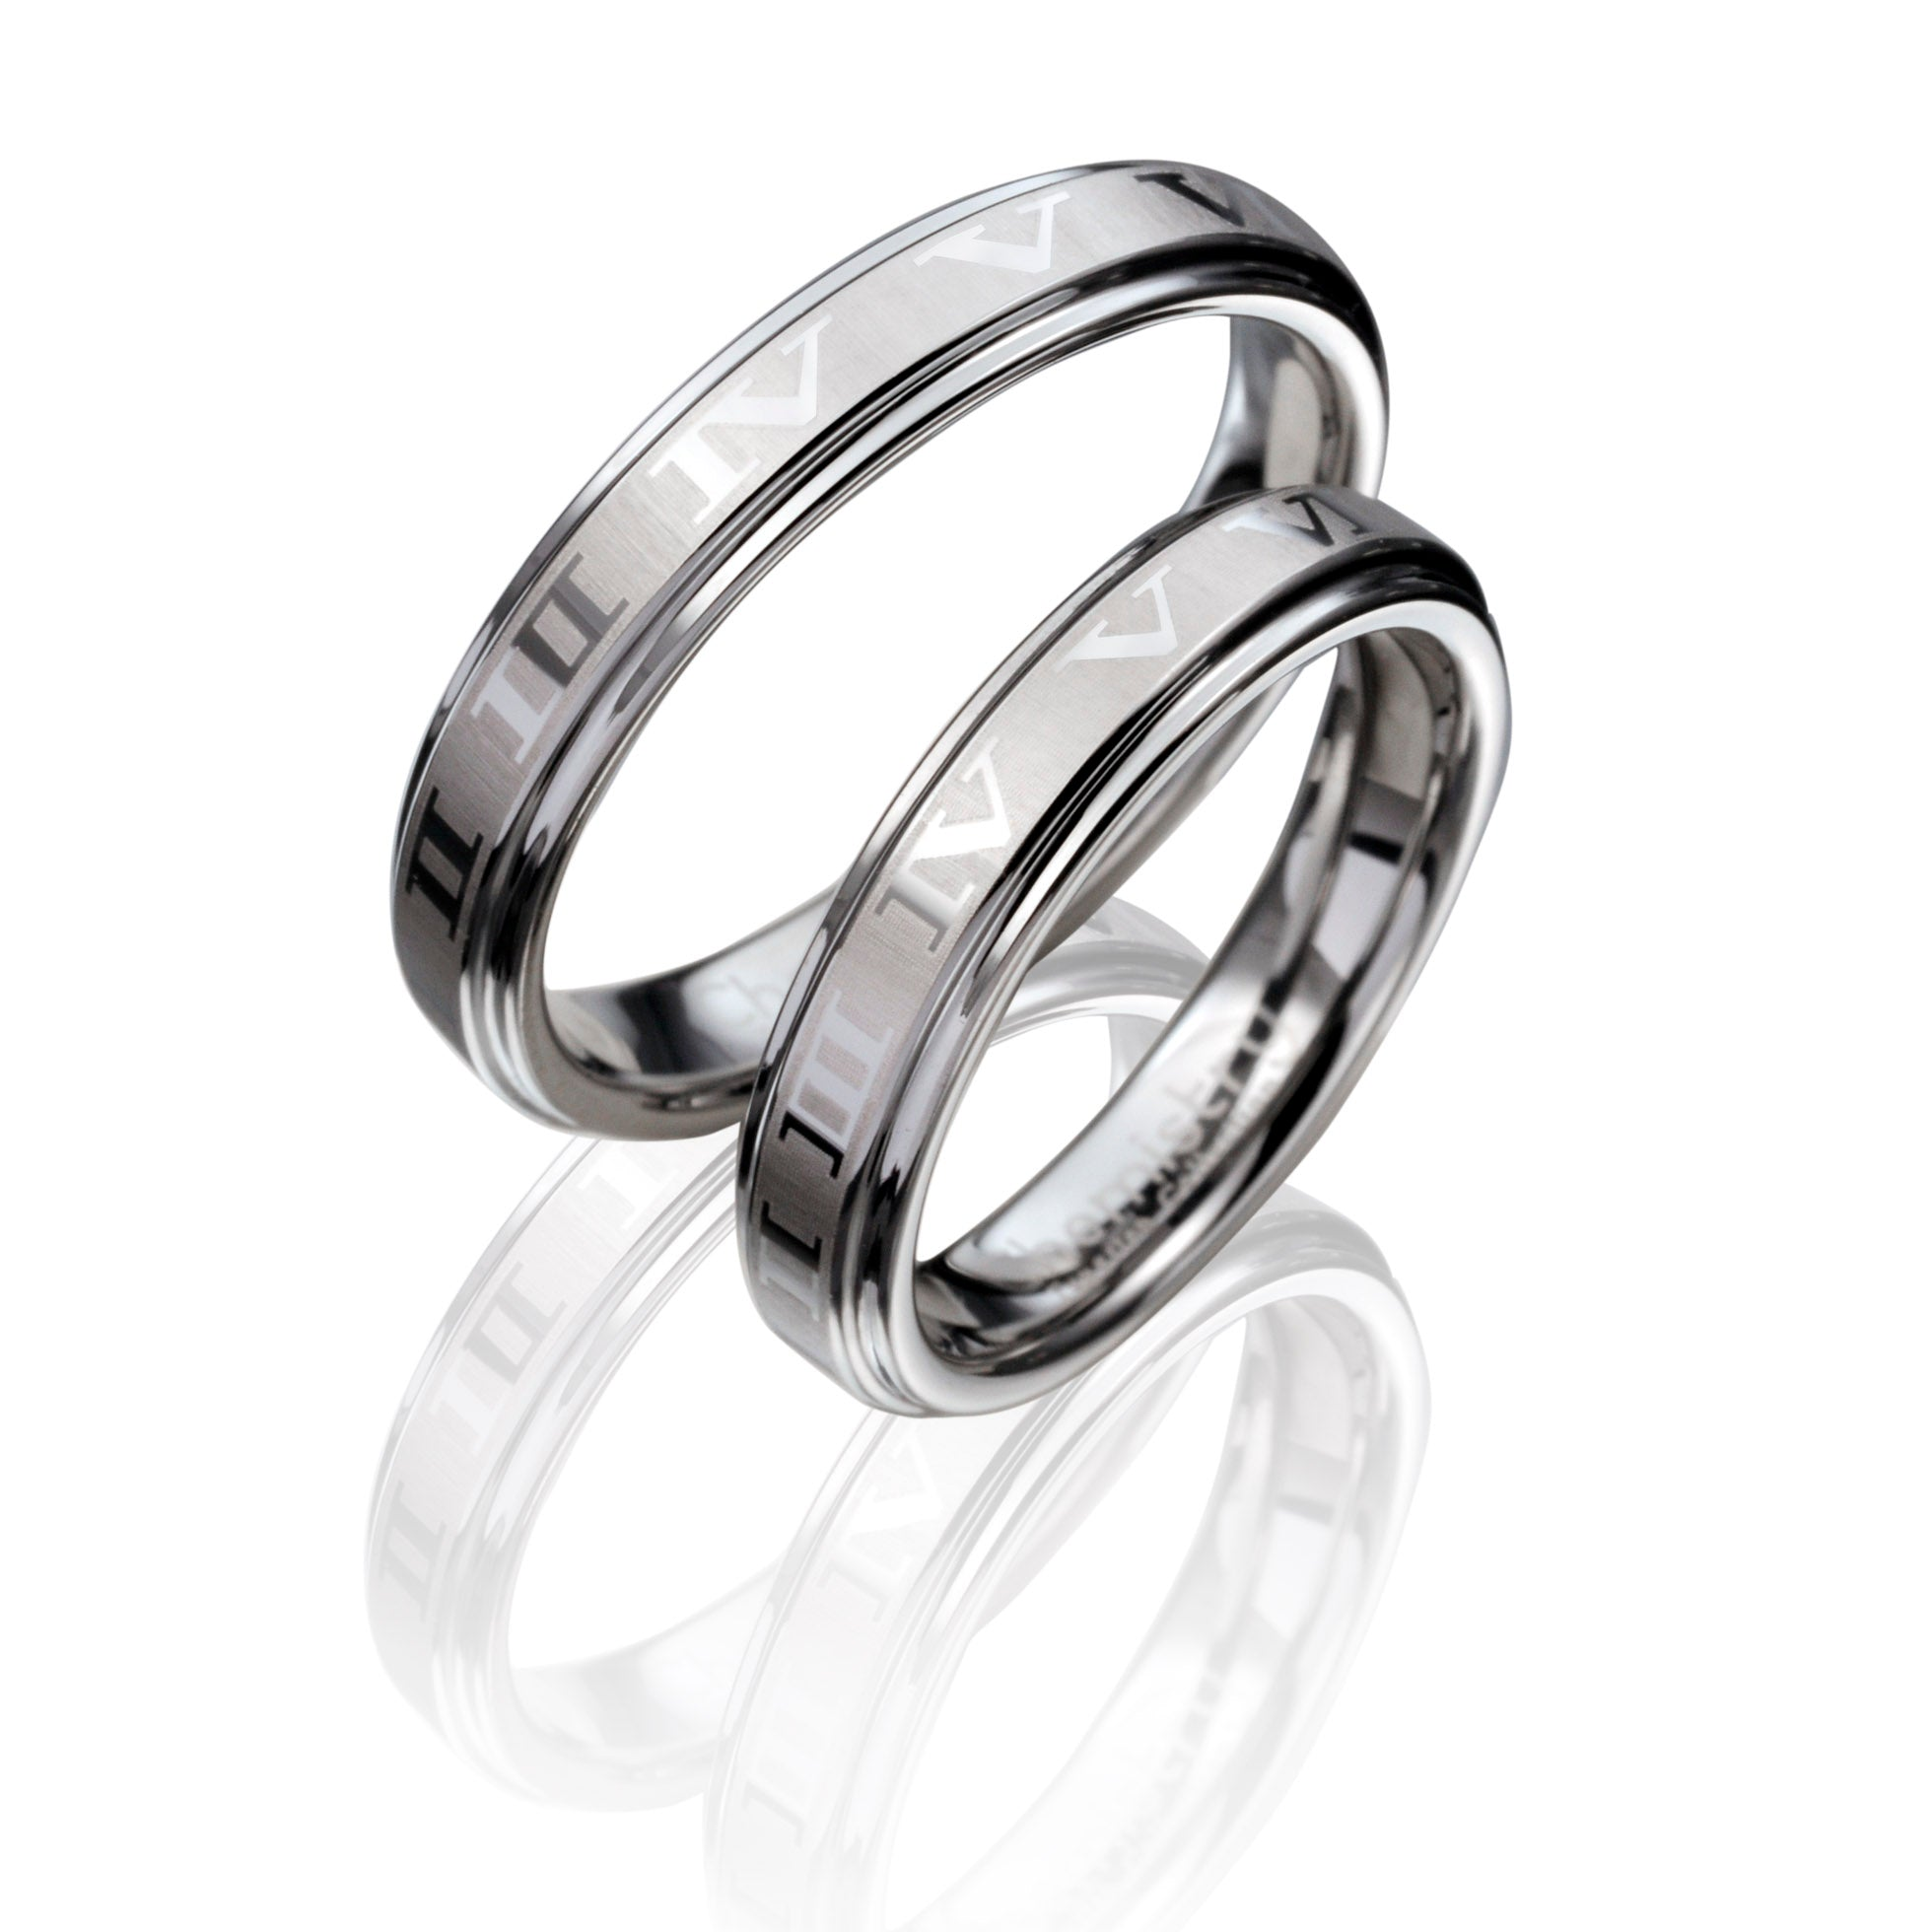 Romantic Roman Numeral Etched Silver Tungsten Ring in Pairs